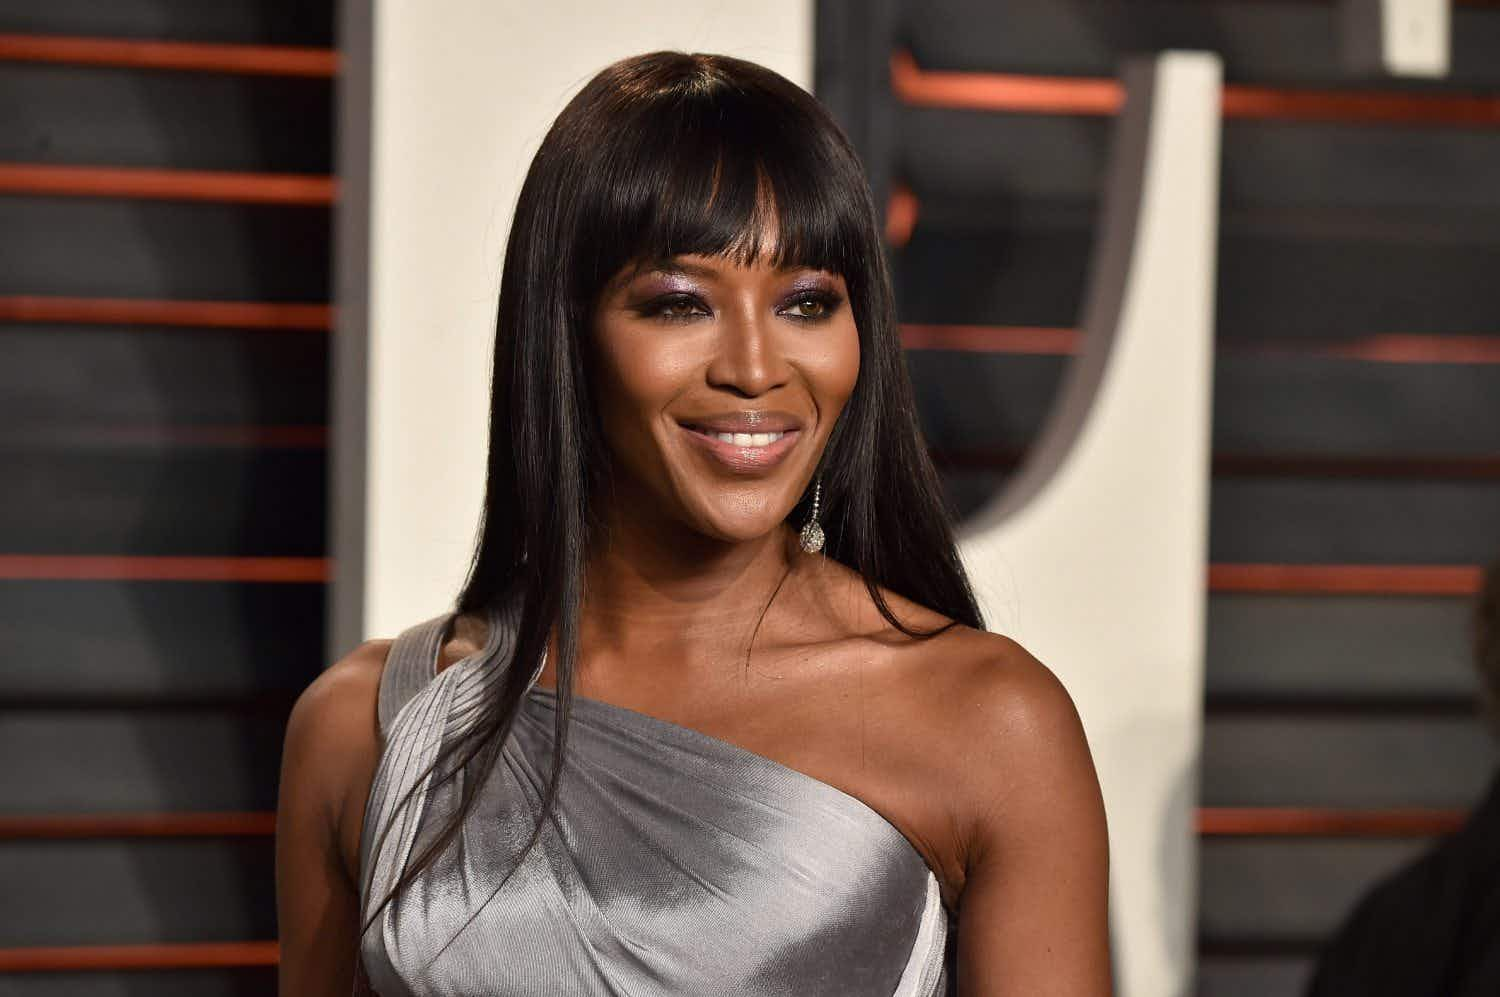 WATCH: Model Naomi Campbell scrubs down her entire plane seat before she travels